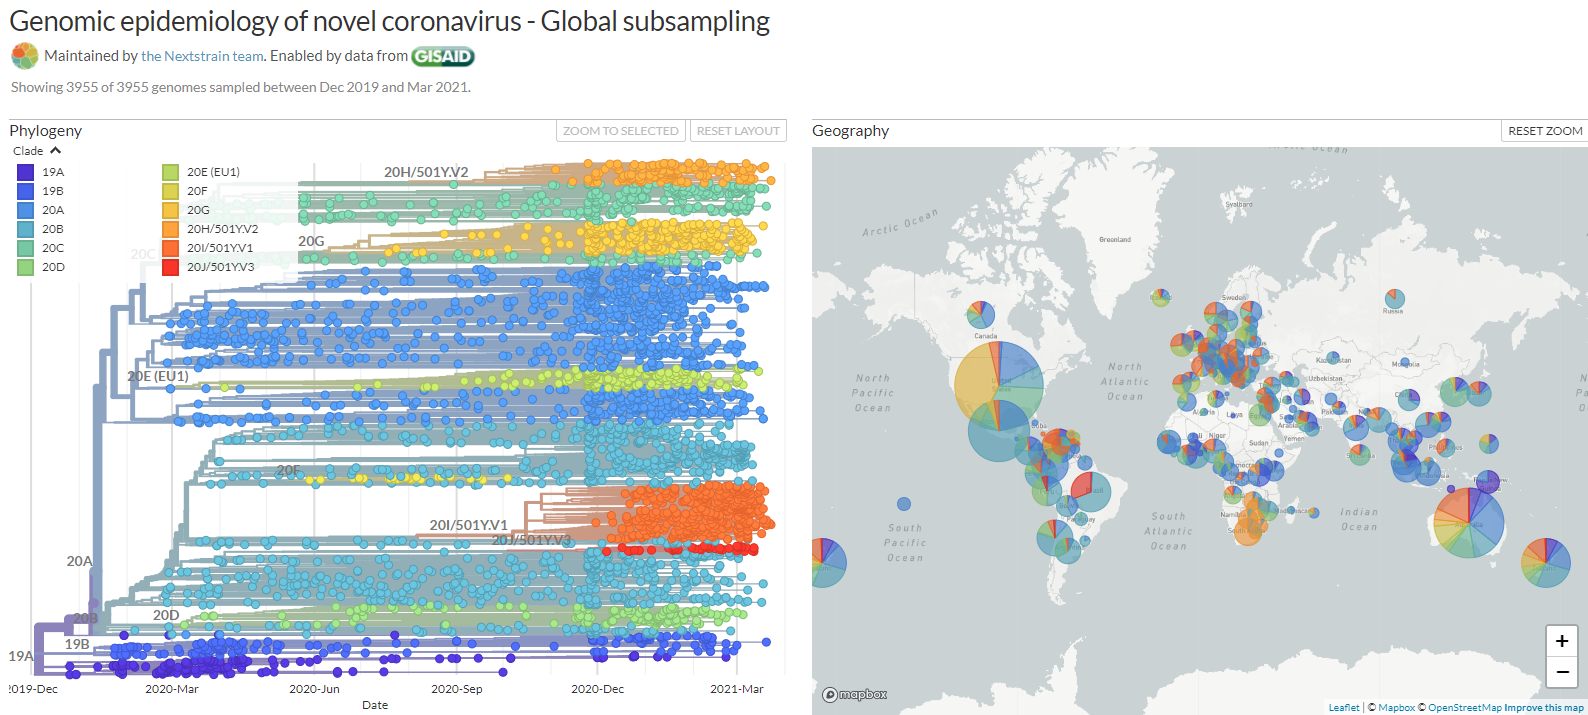 covid-19-genomic-epidemiology-of-novel-coronavirus-global-subsampling-2019-12-2021-03.png